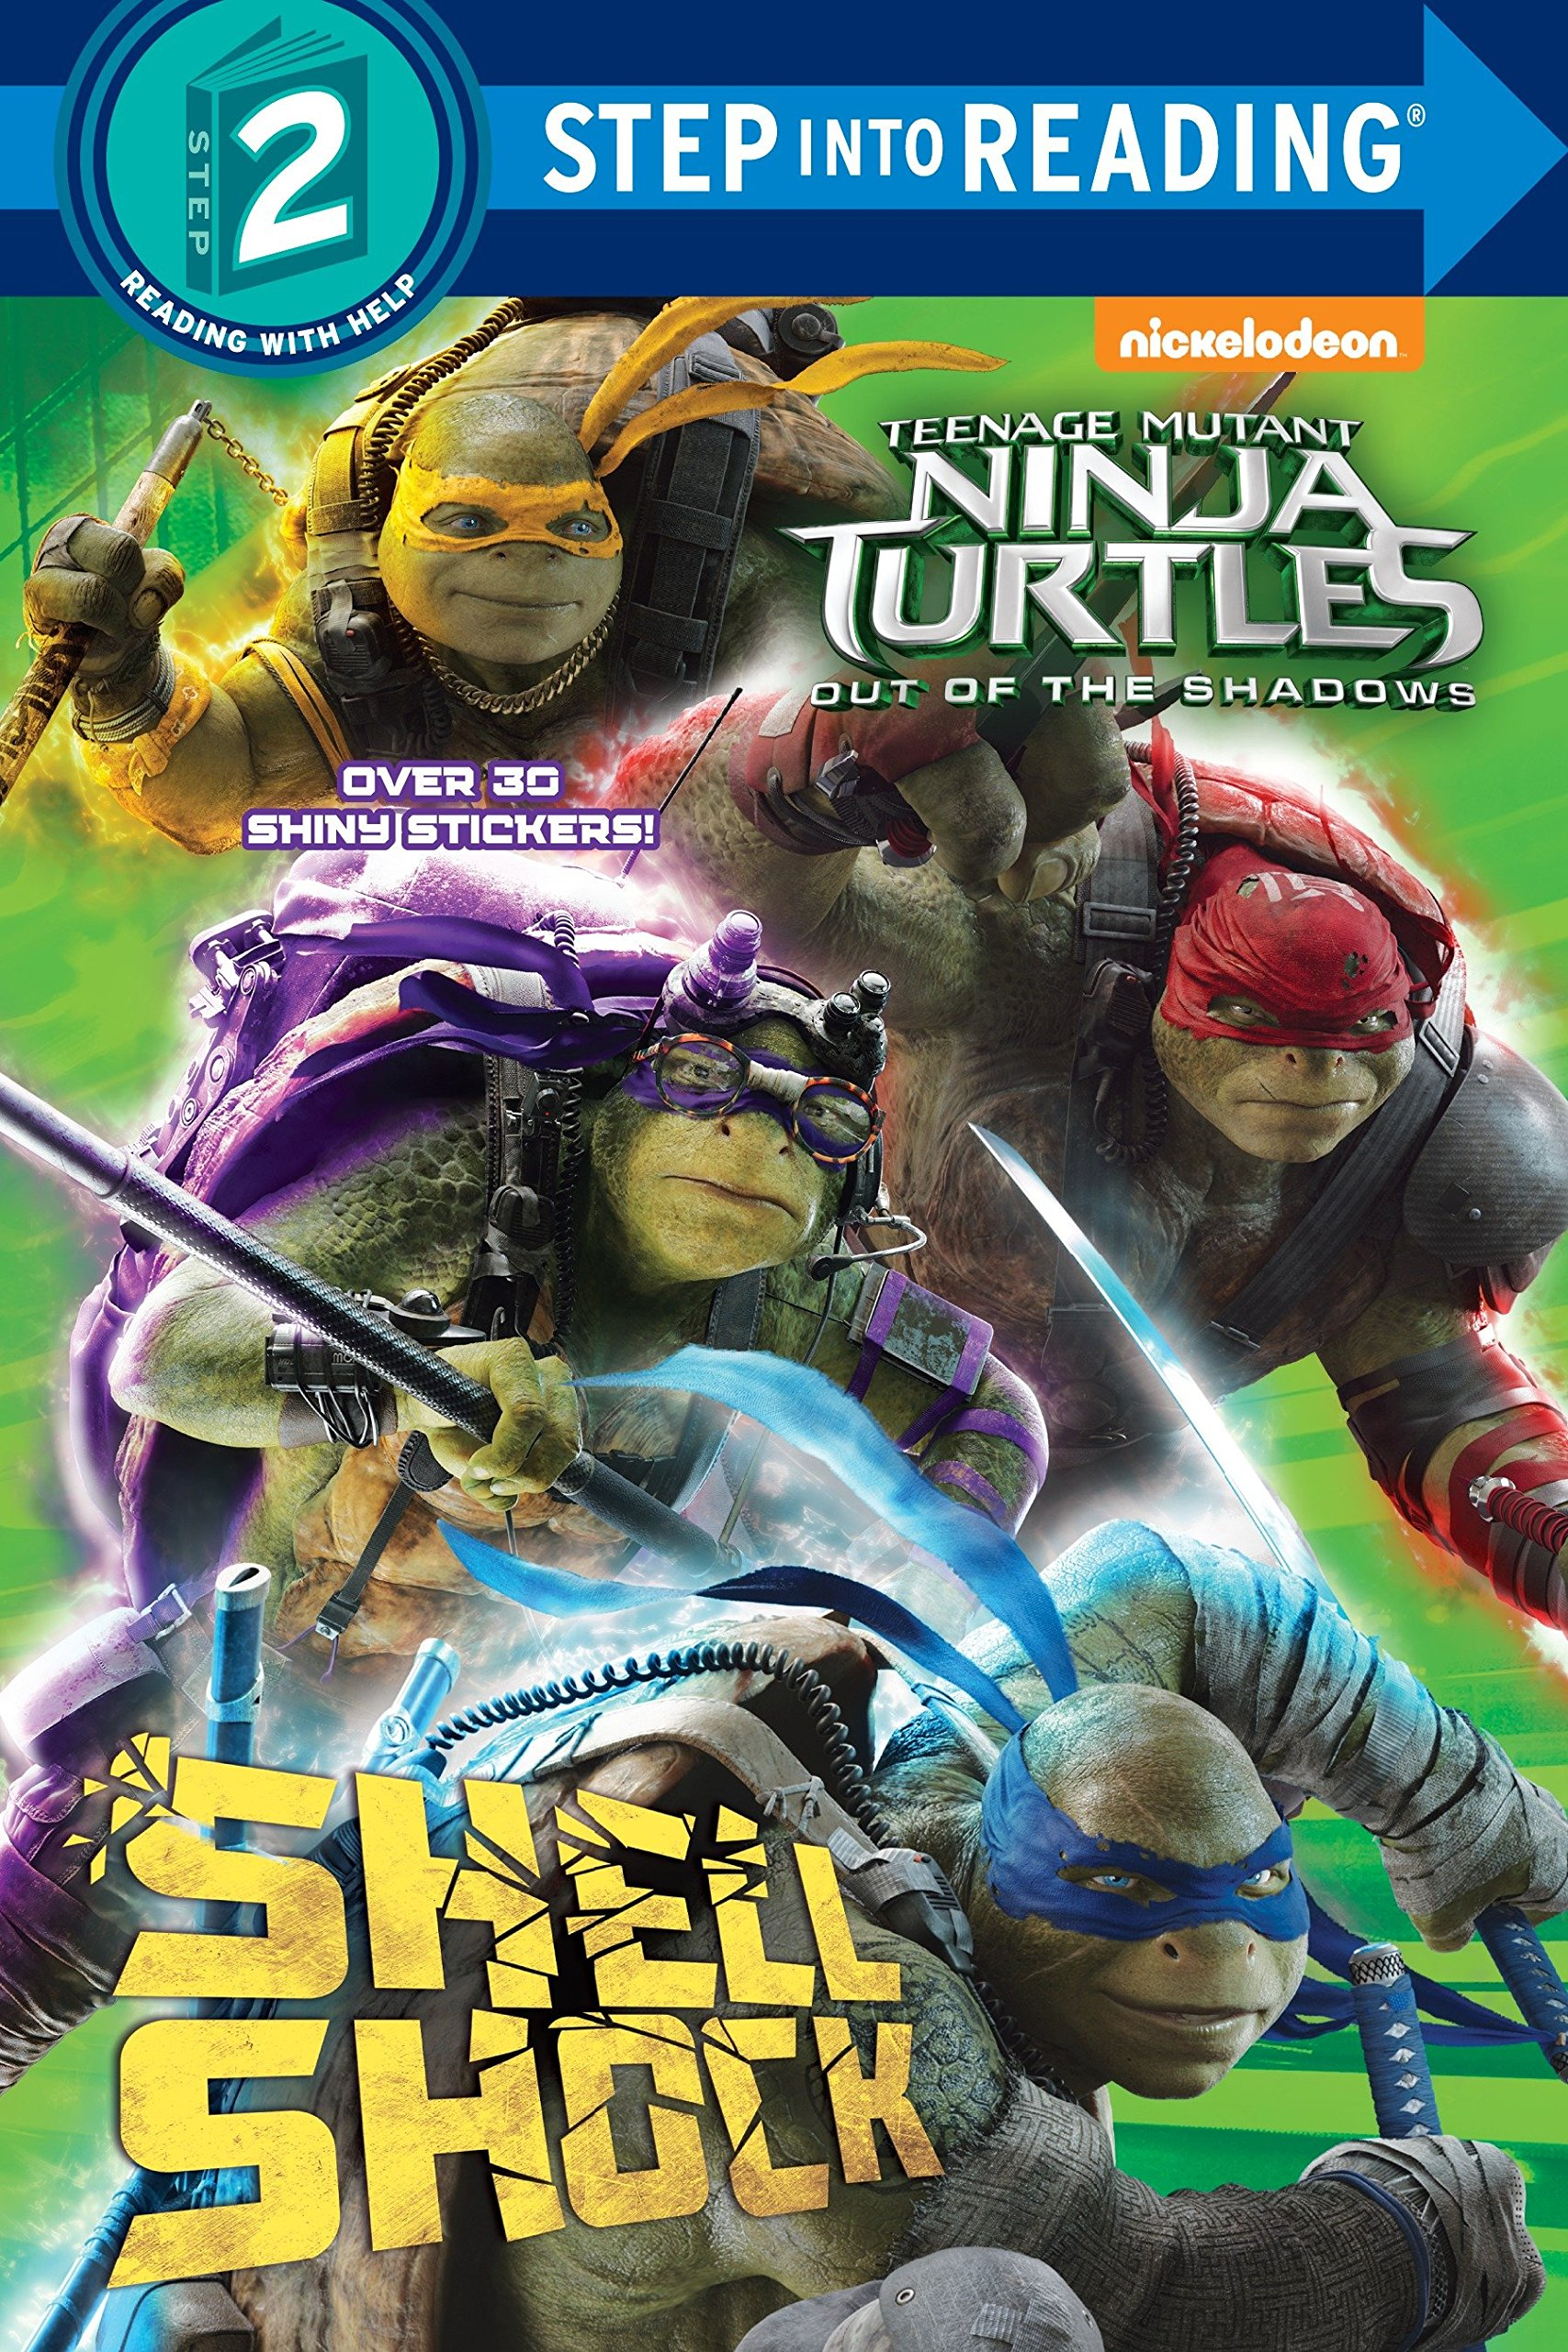 Amazon Com Teenage Mutant Ninja Turtles Out Of The Shadows Step Into Reading Teenage Mutant Ninja Turtles 9781101938553 Random House Villanelli Paolo Books